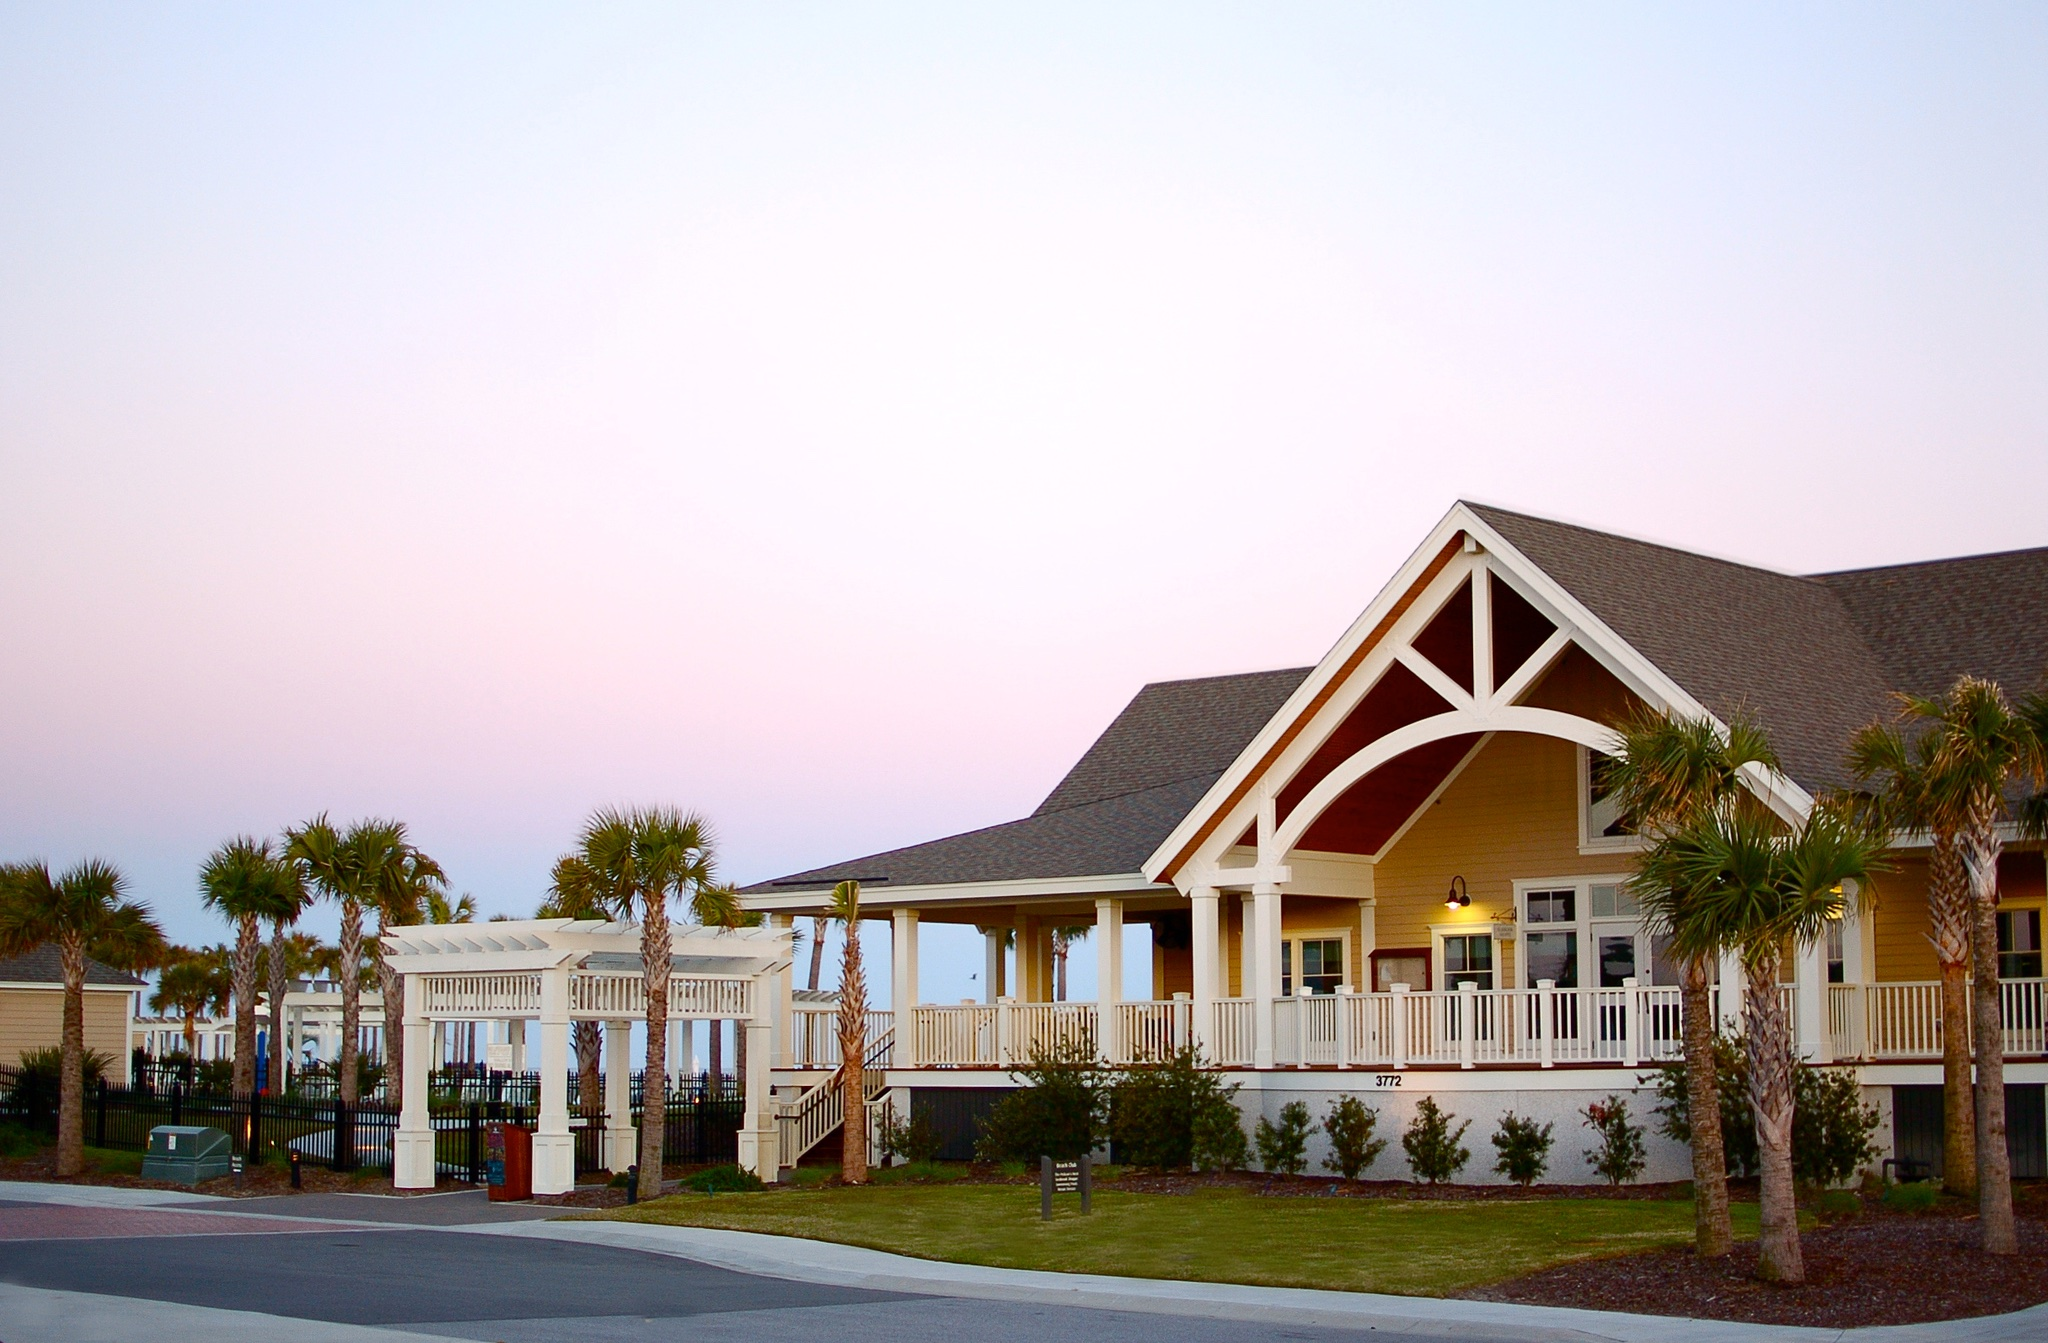 Cotton candy skies provide a gorgeous backdrop for the Seabrook Island Beach Club shoppe.